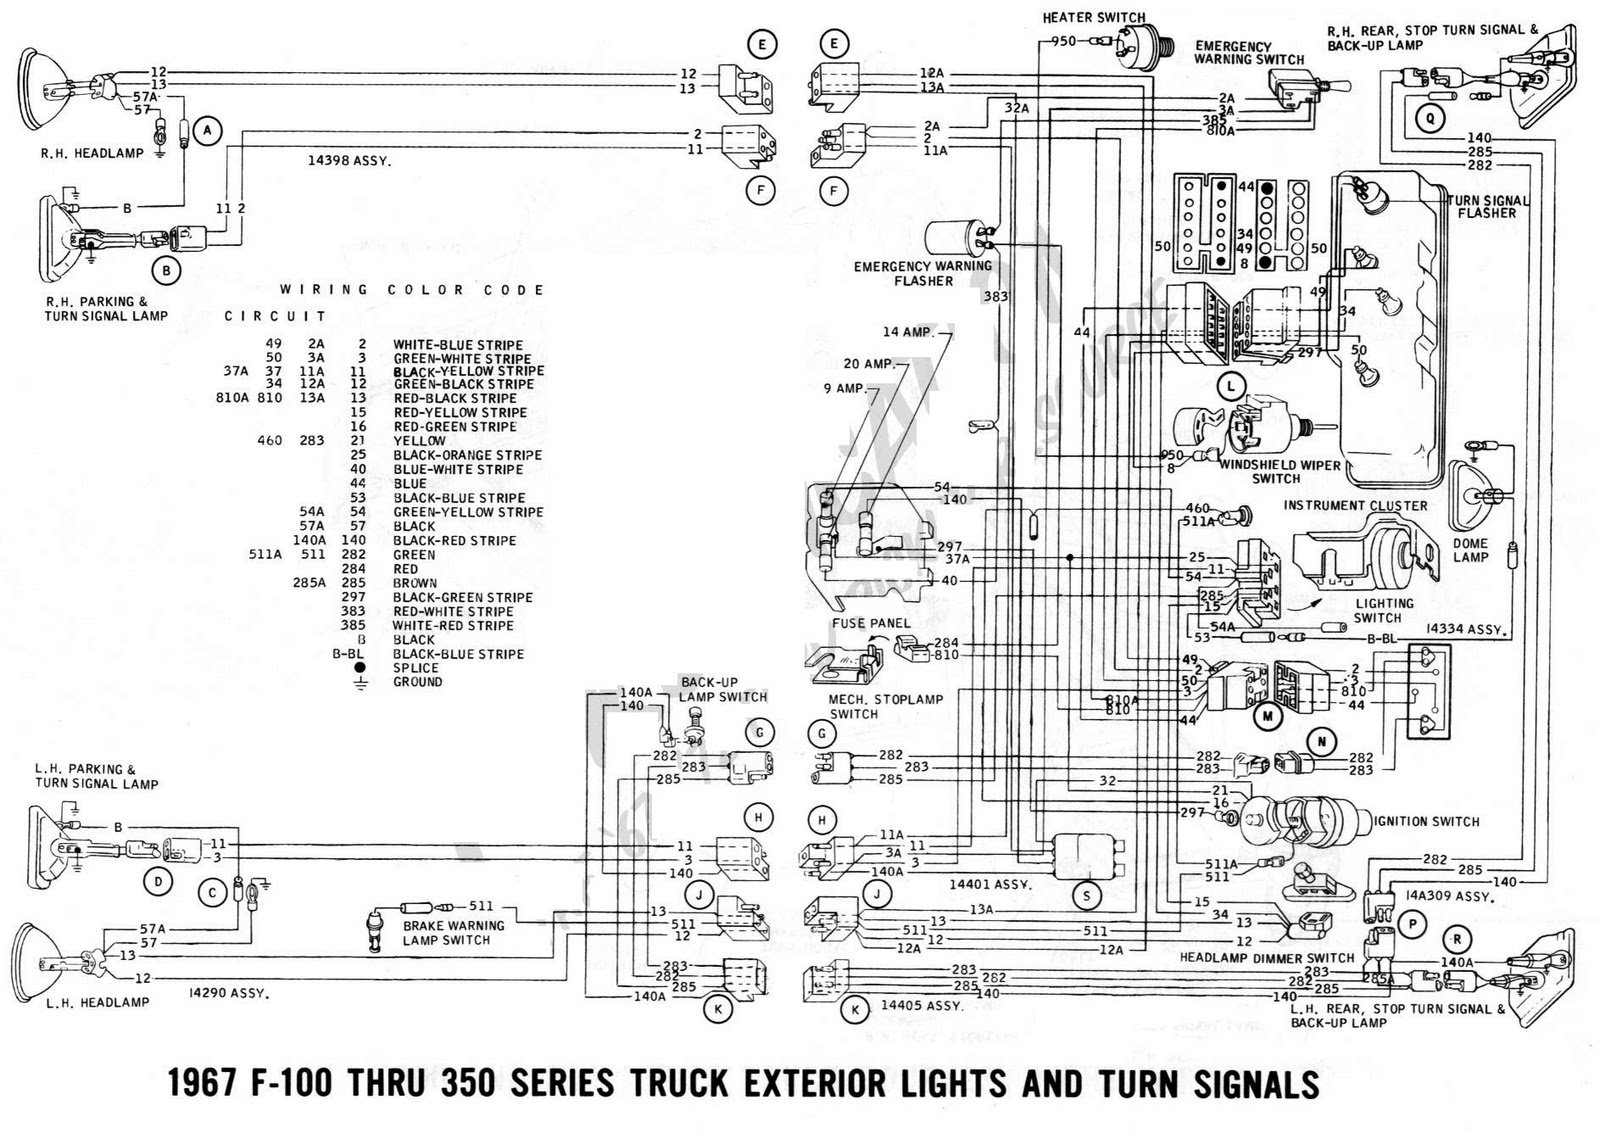 Ecm 067h2 K6a 26 34 Connector Wiring Diagram 2001 Chevy